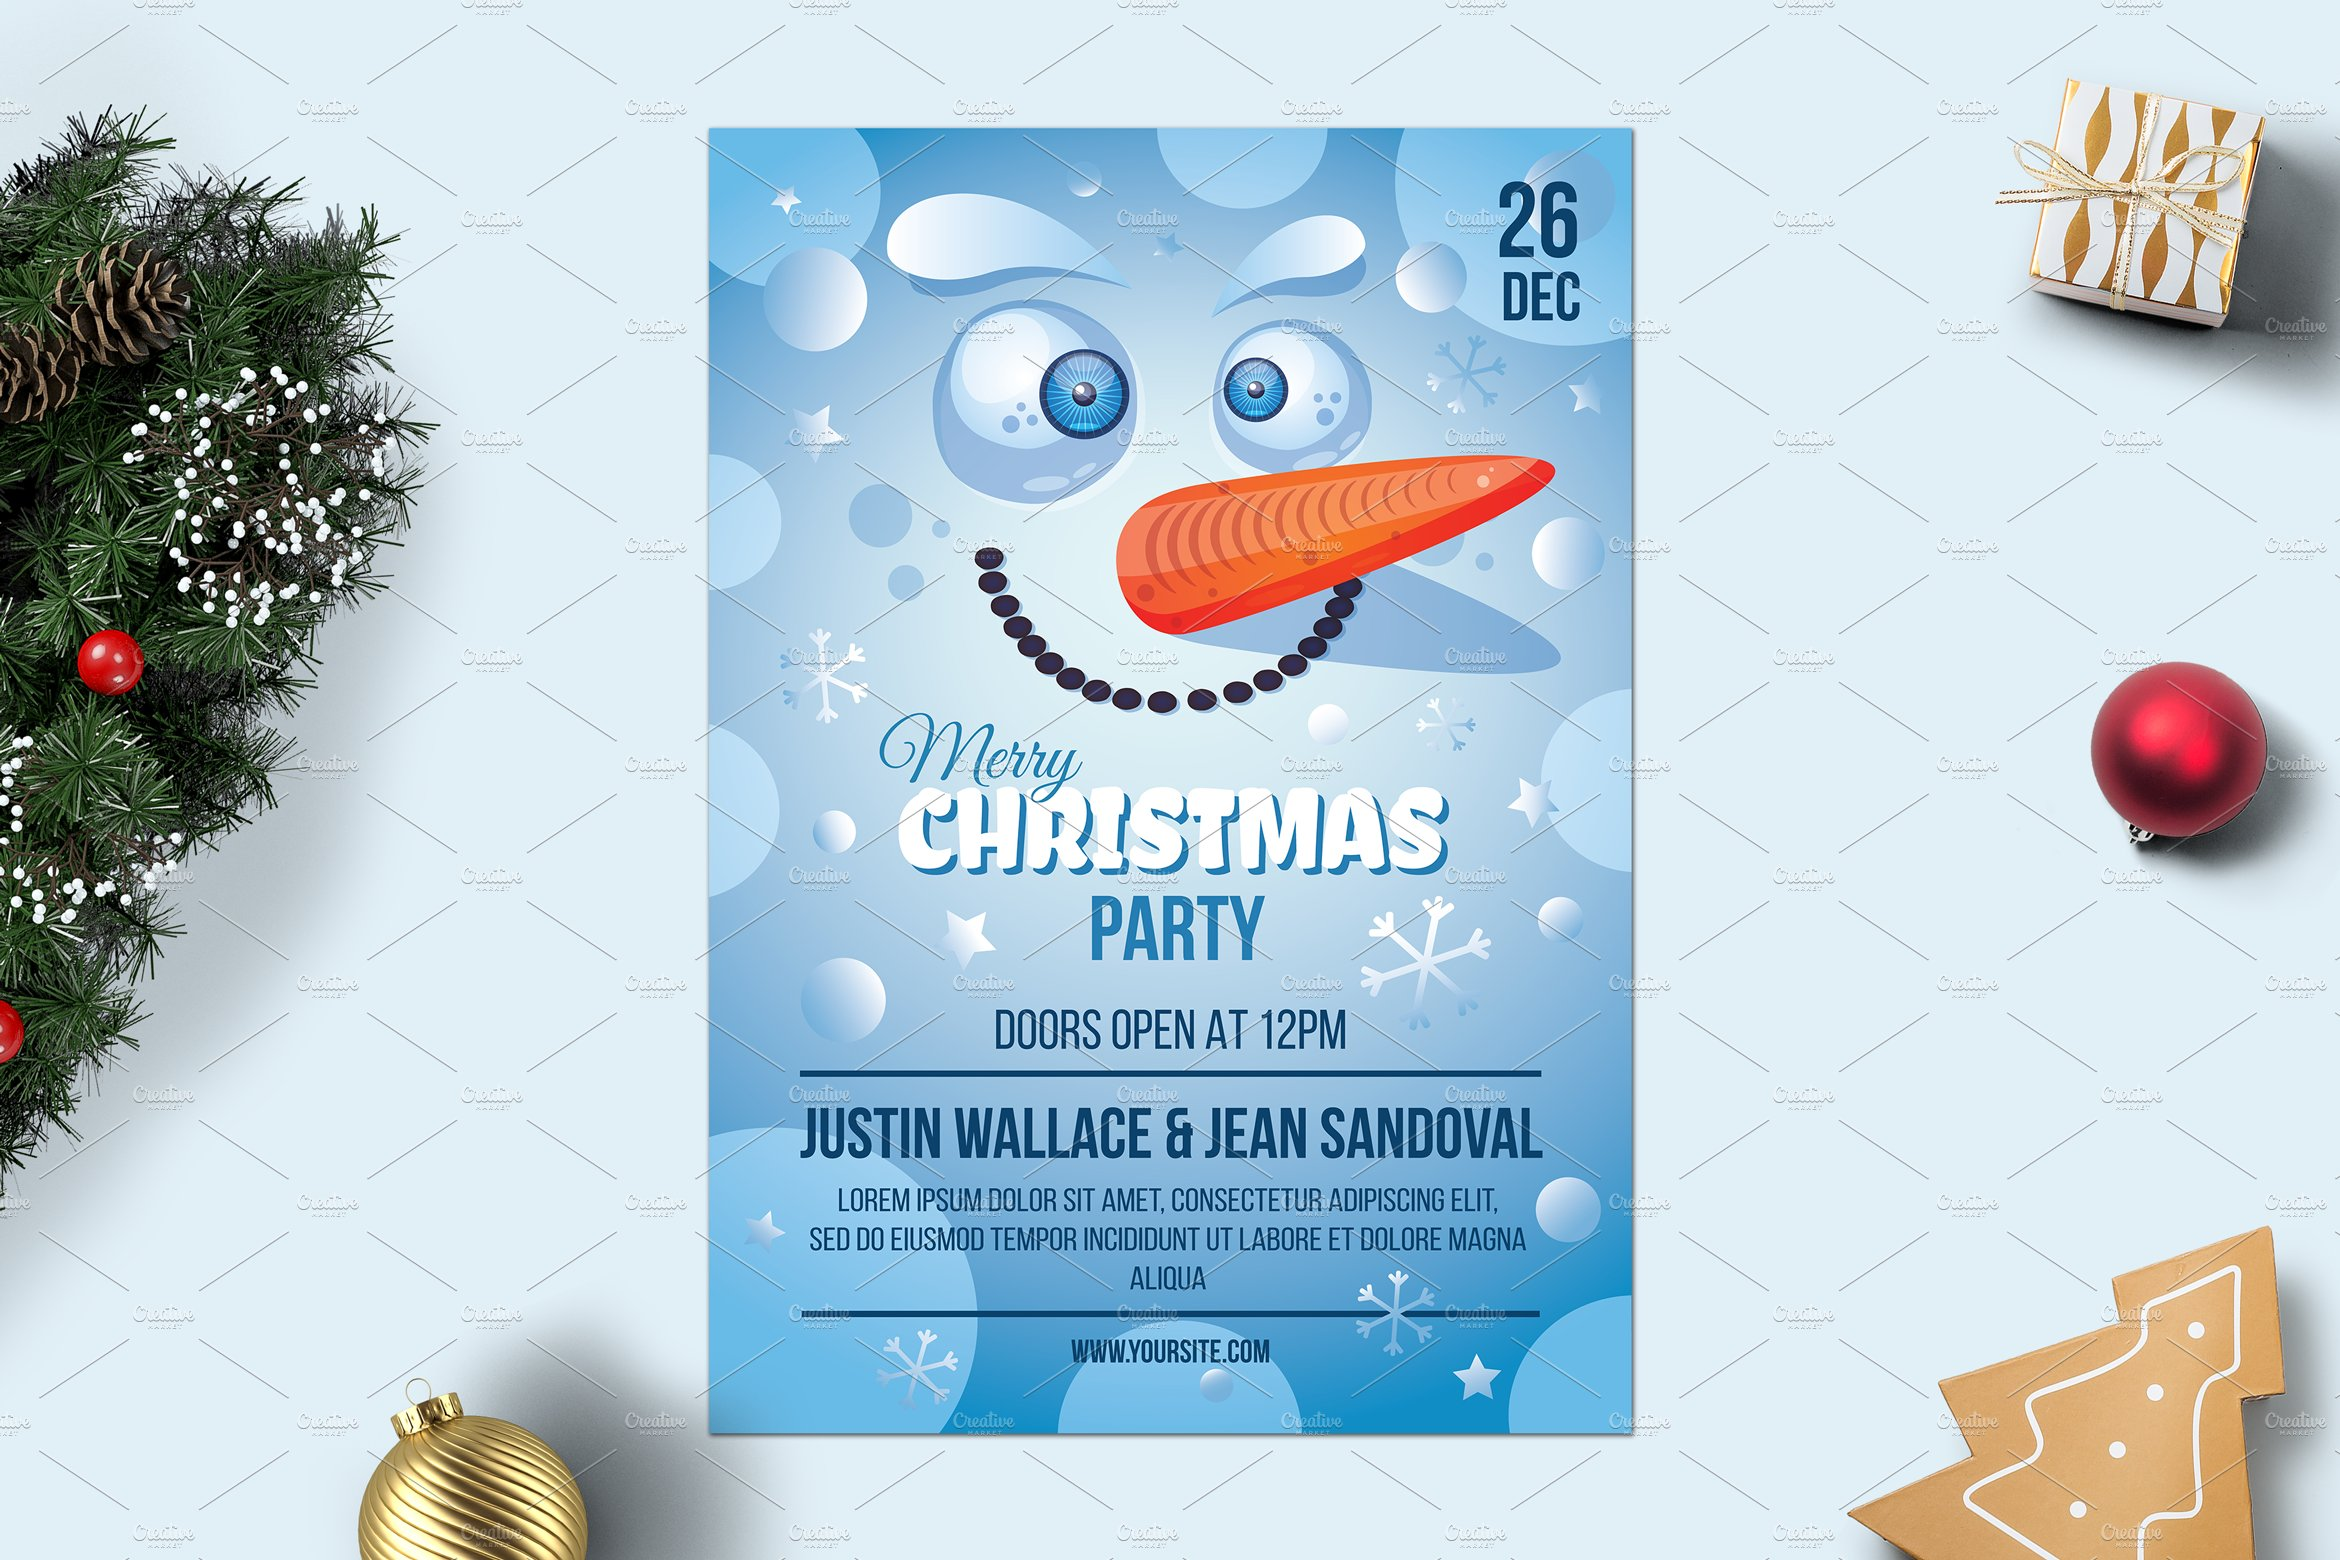 Merry Christmas Poster With Snowman Corporate Identity Template